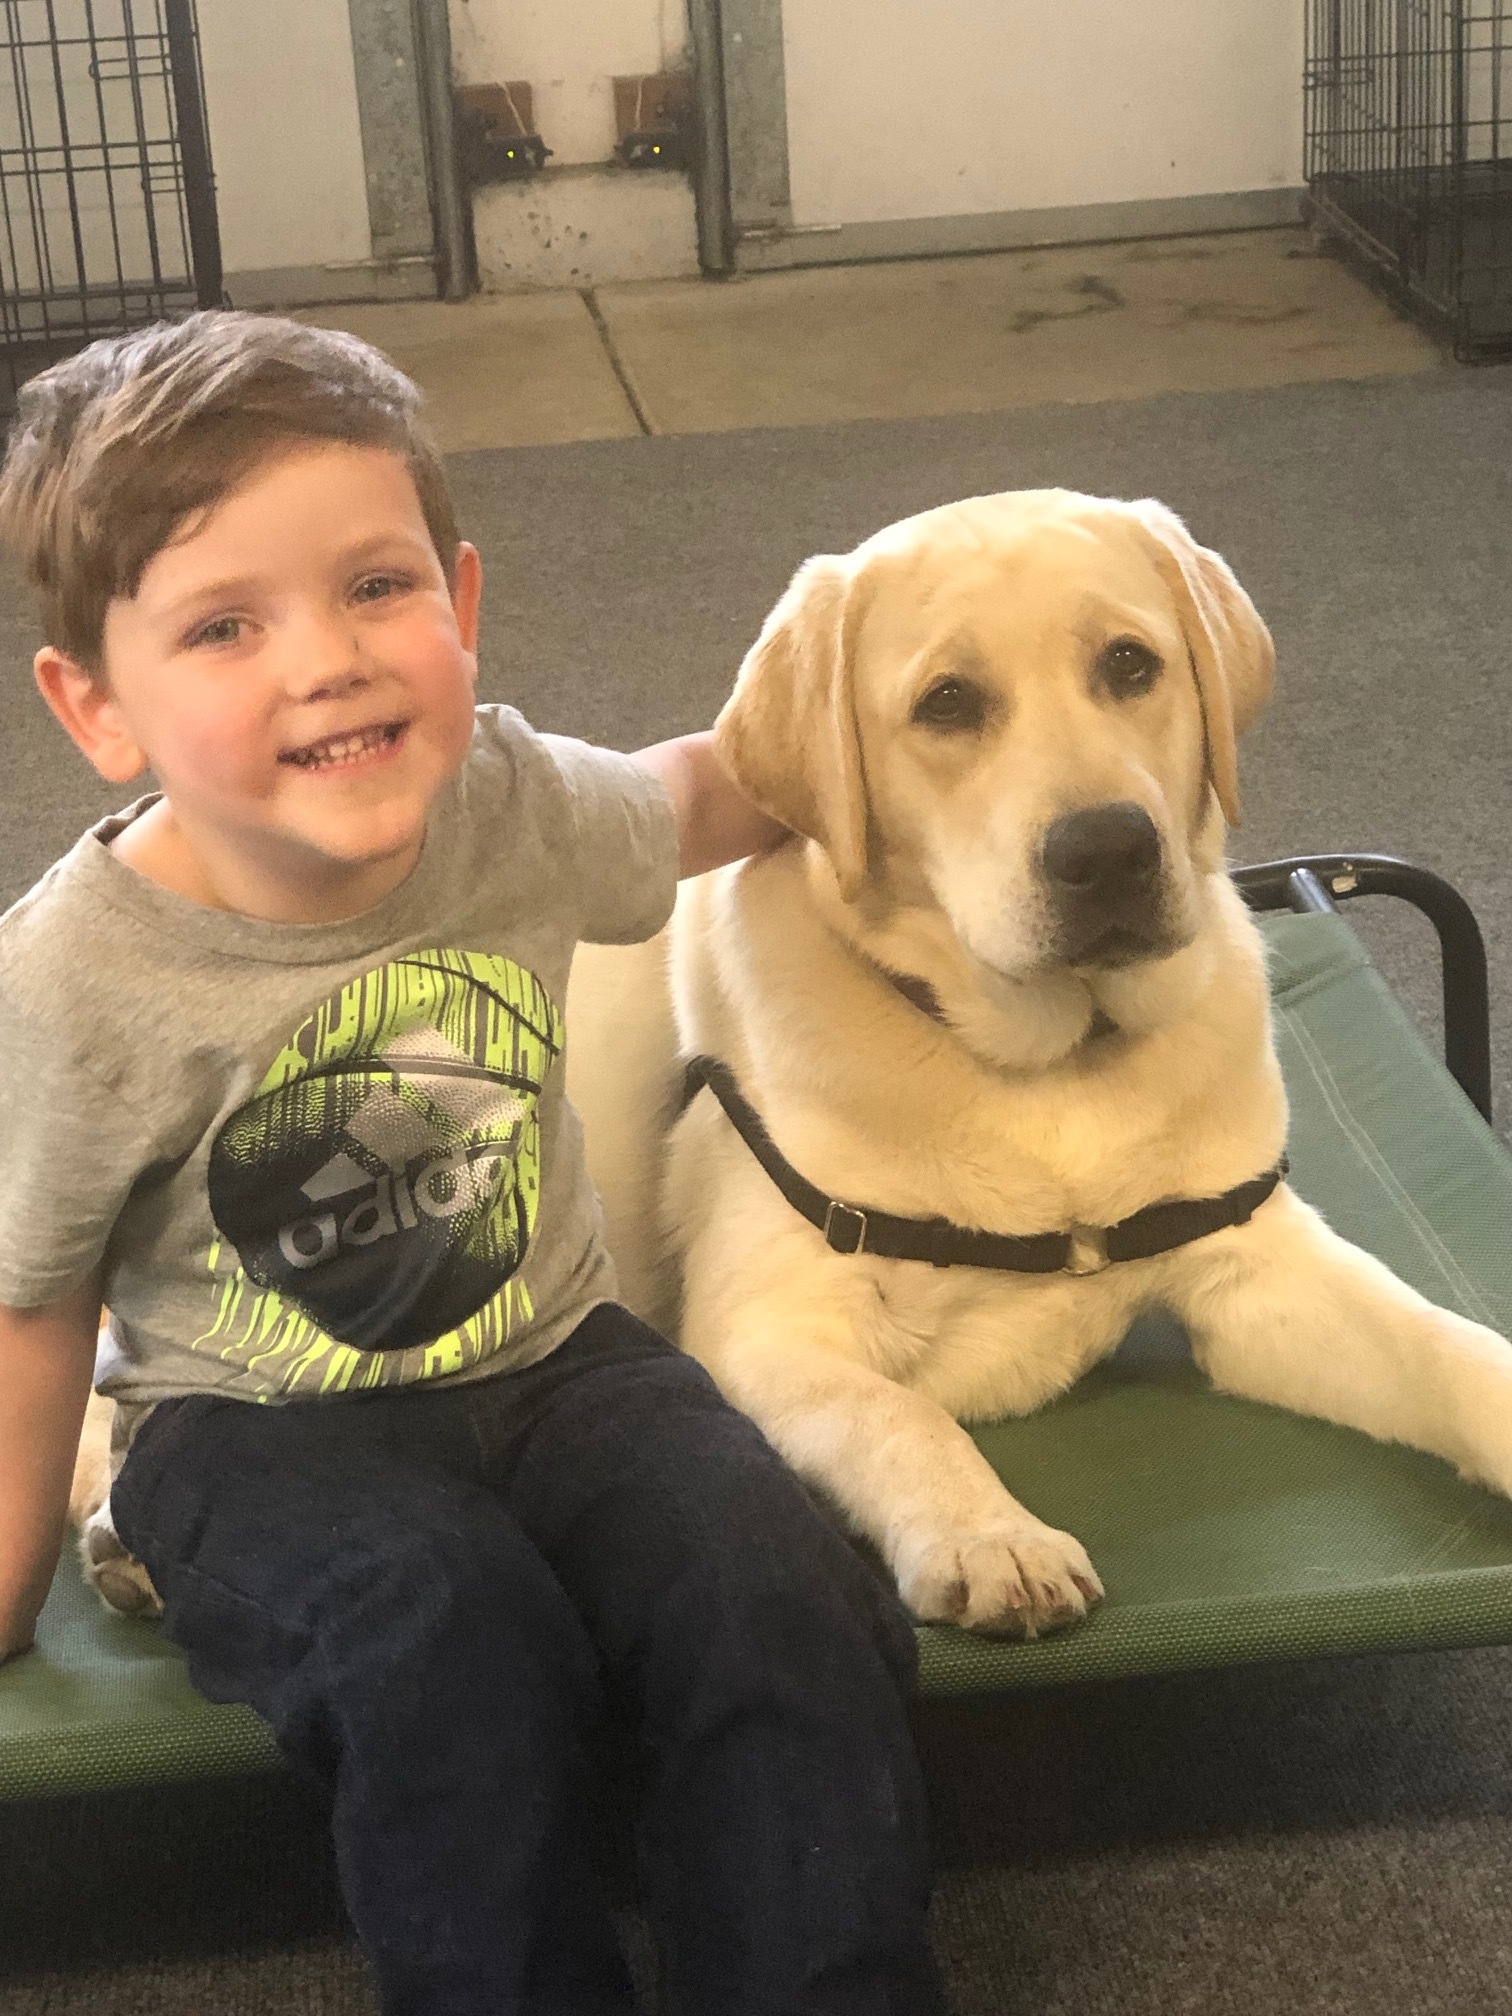 Max and Casper - Max and Casper are best buds! The bond between these two was instantaneous.Please help Max get his service dog through your donation!